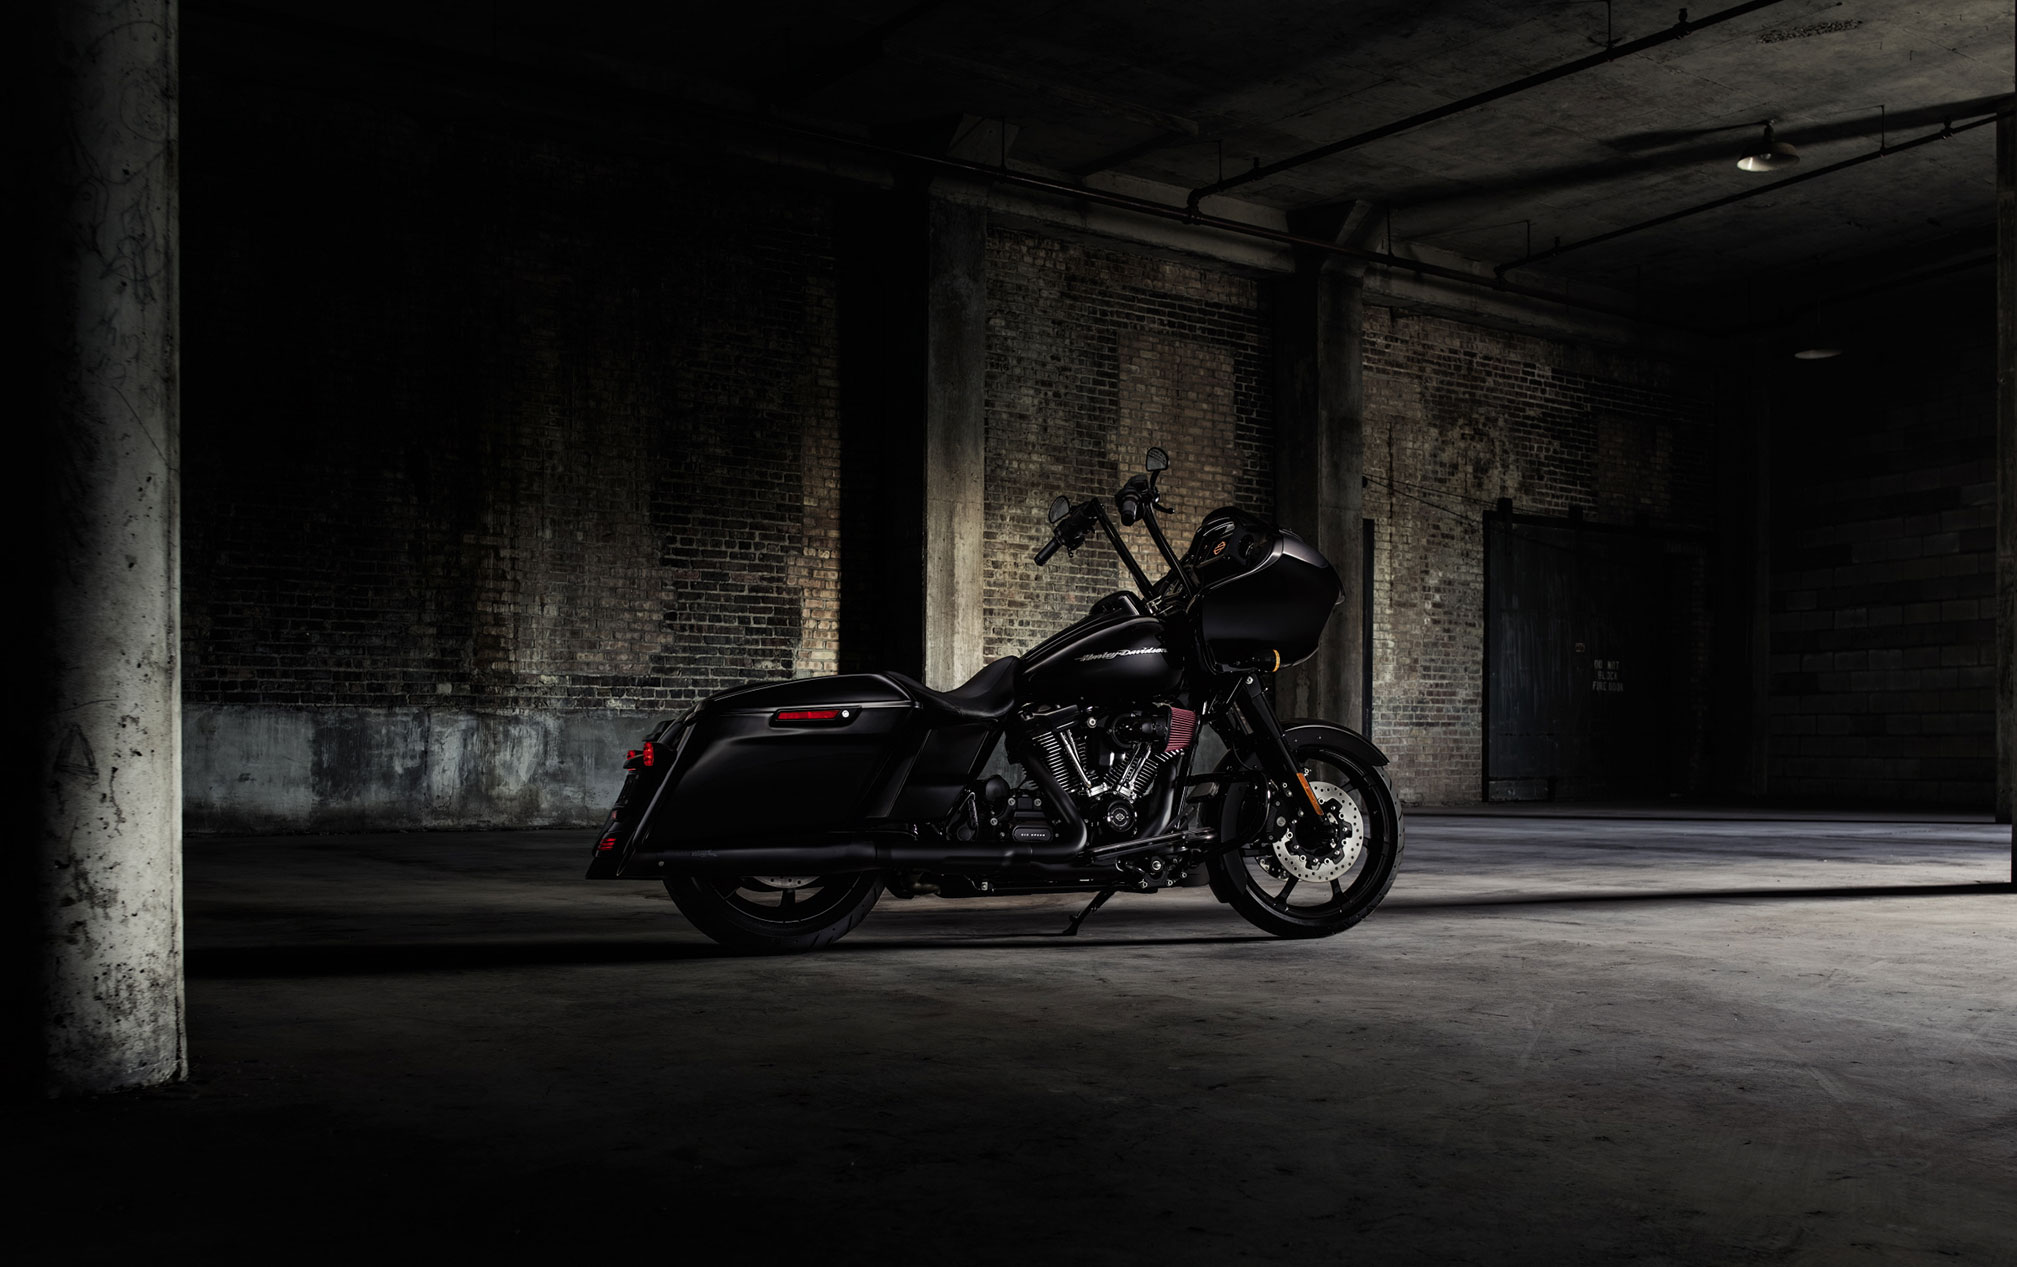 2017 Harley-Davidson Road Glide Special HD Wallpaper